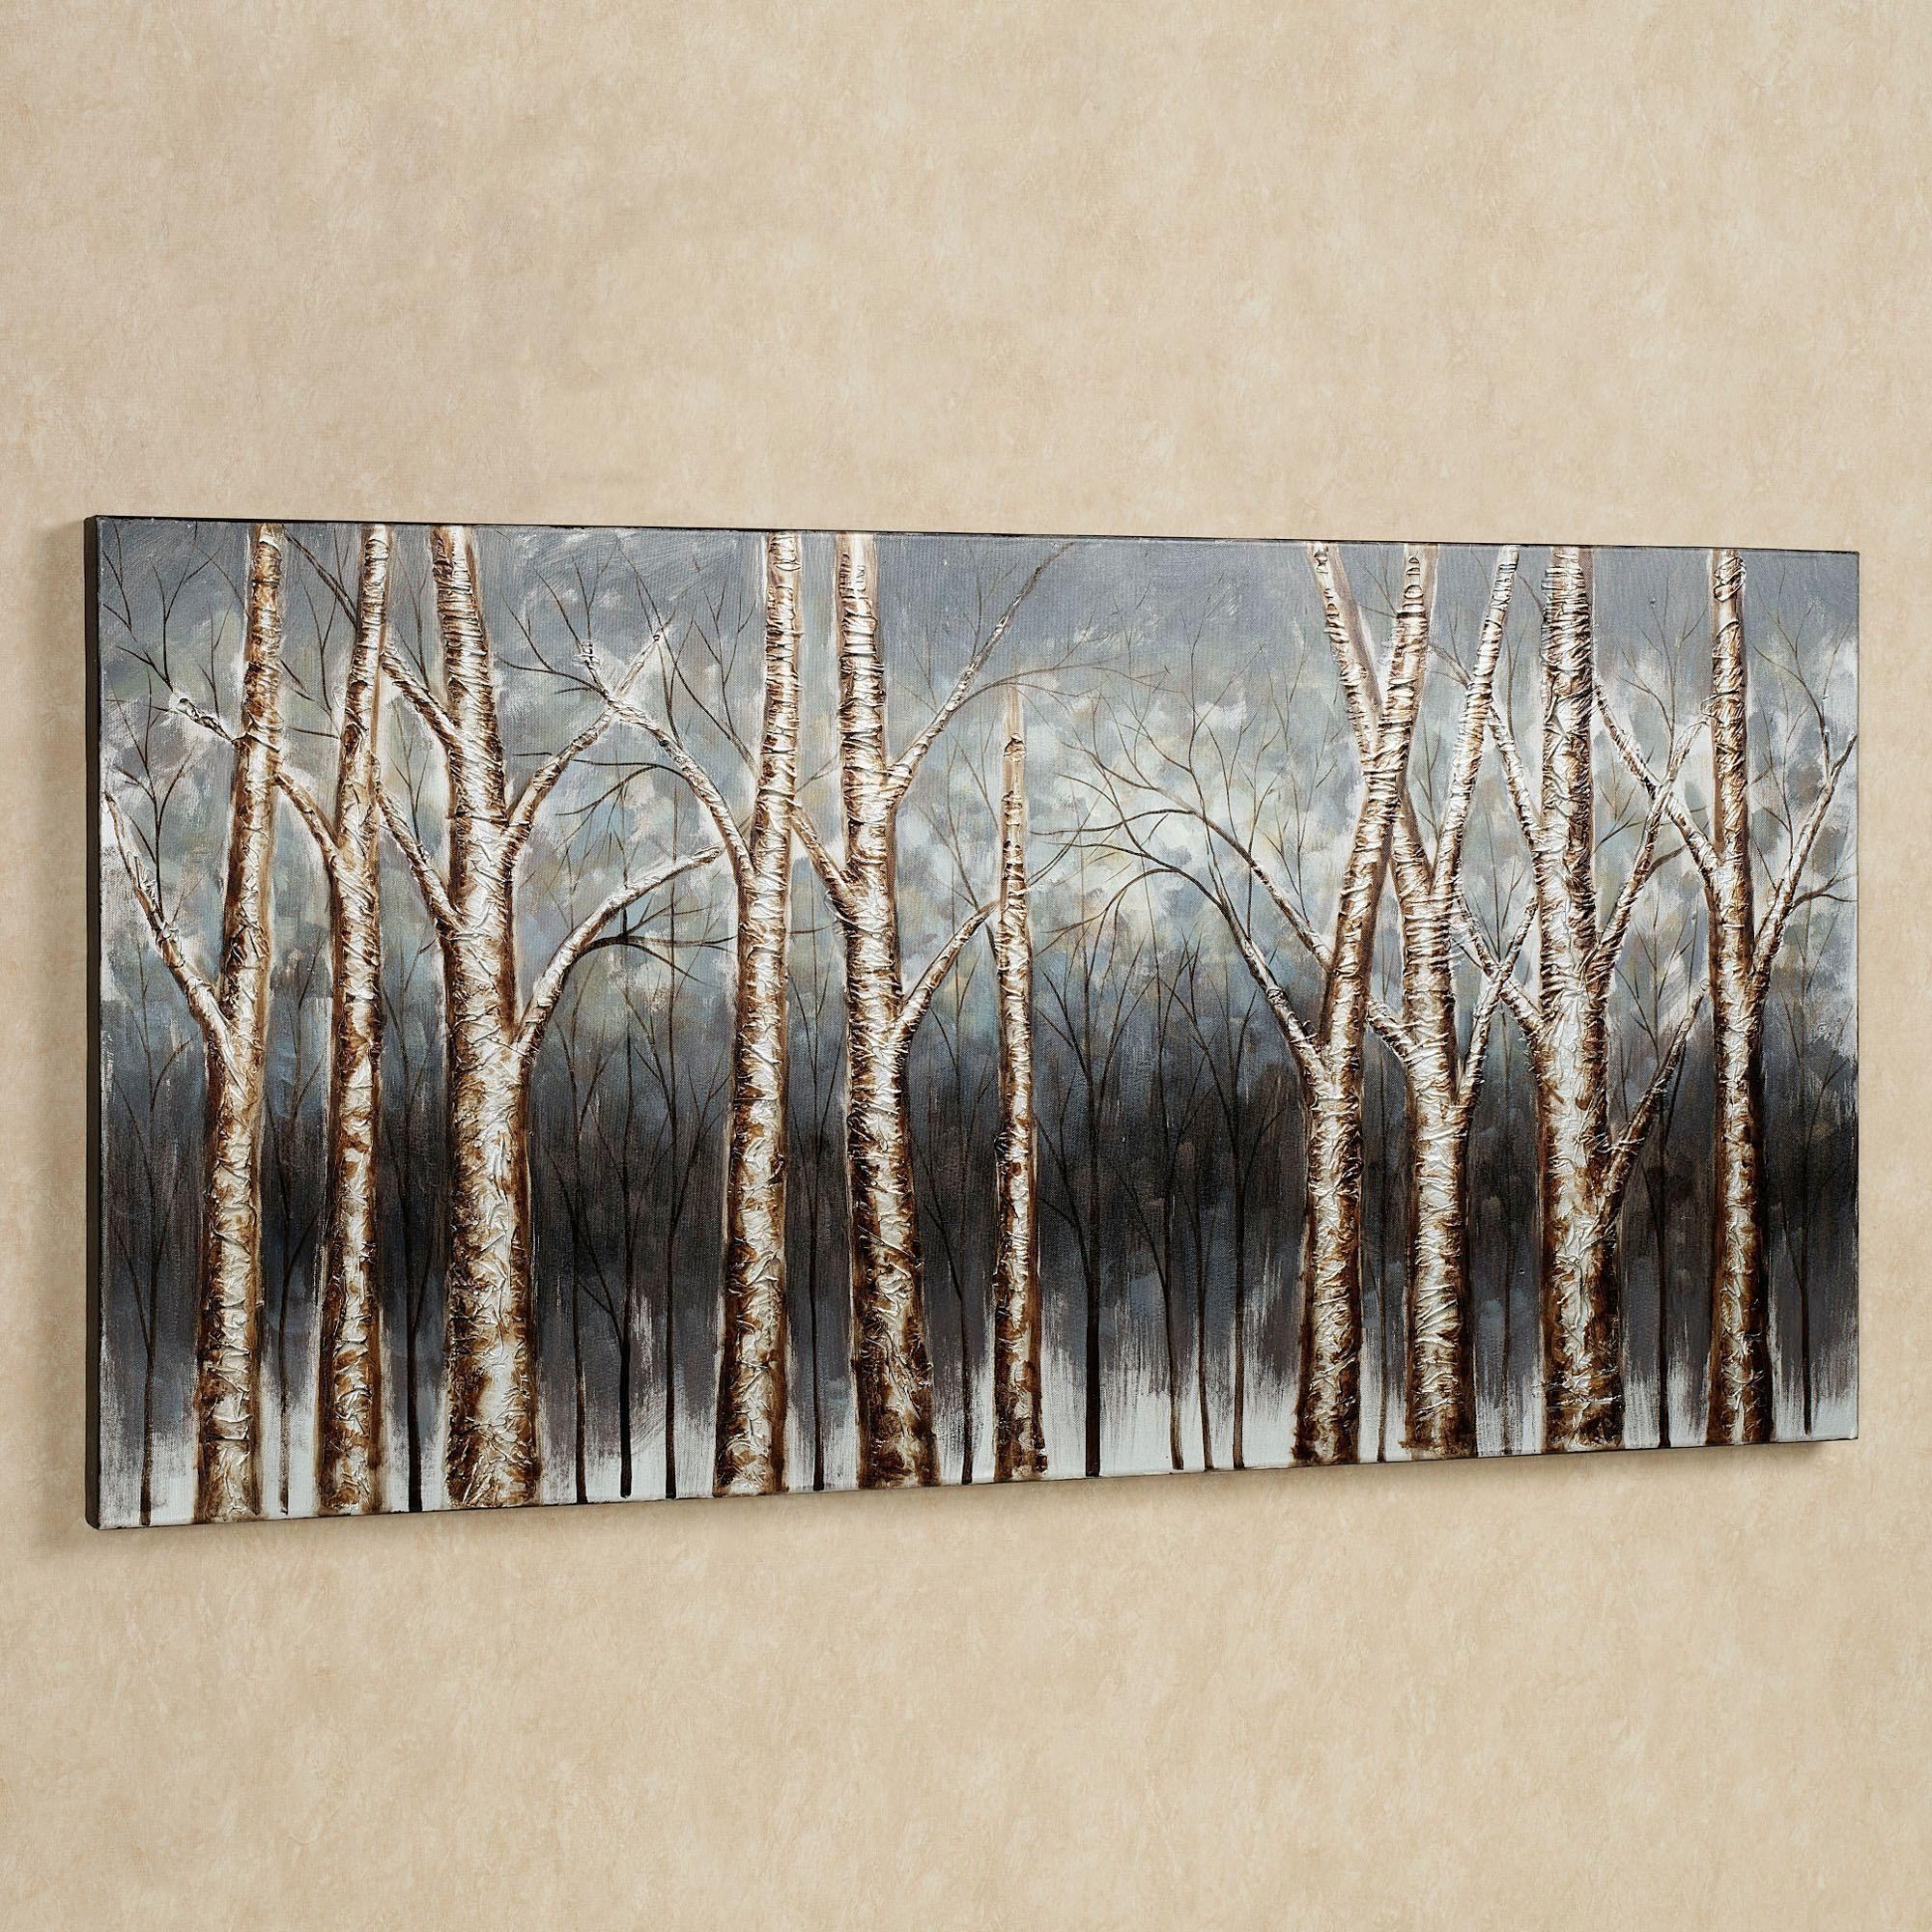 Wall Art Designs: Beautiful Gallery Of Canvas Wall Art Trees With For Horizontal Canvas Wall Art (Image 18 of 20)